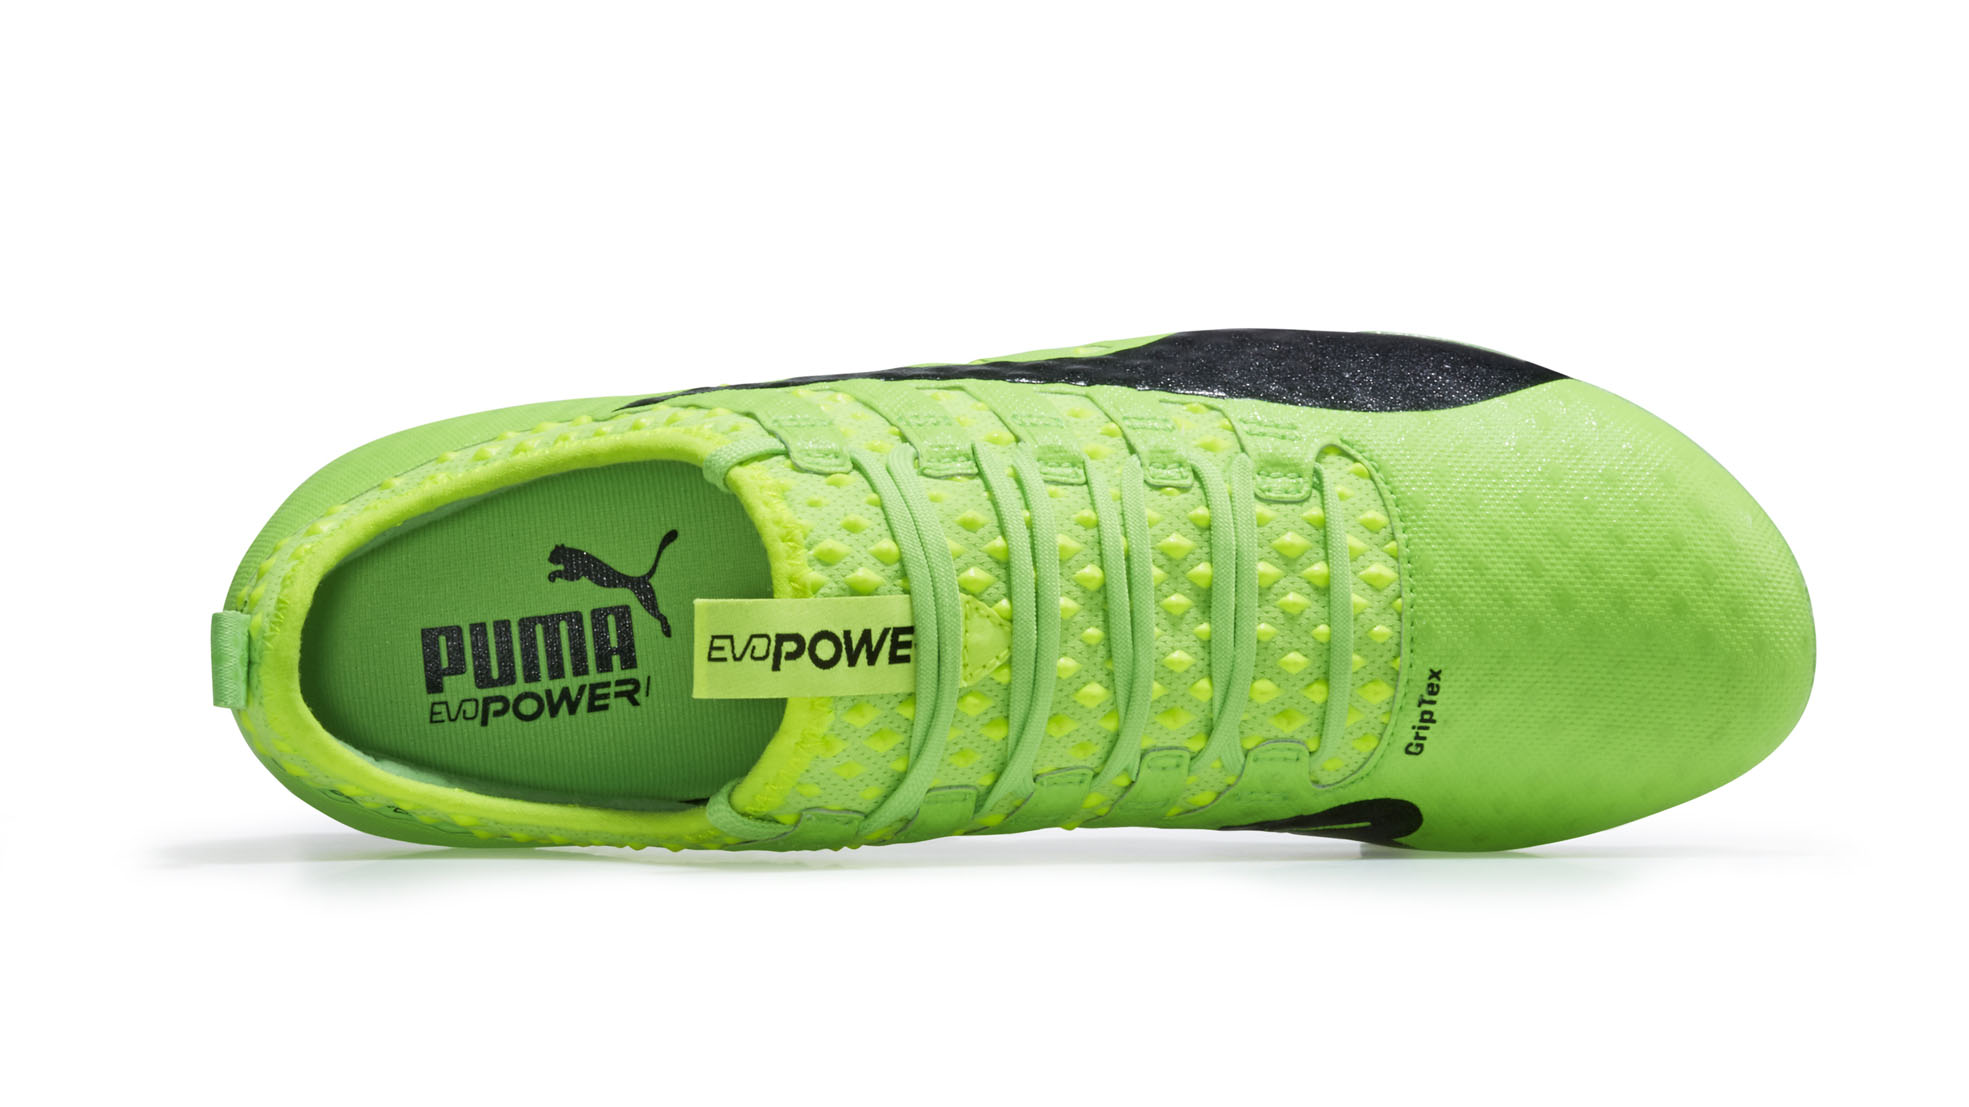 2cdc178aaff PUMA evoPOWER Vigor 1 Football Boots - Mr. Cape Town